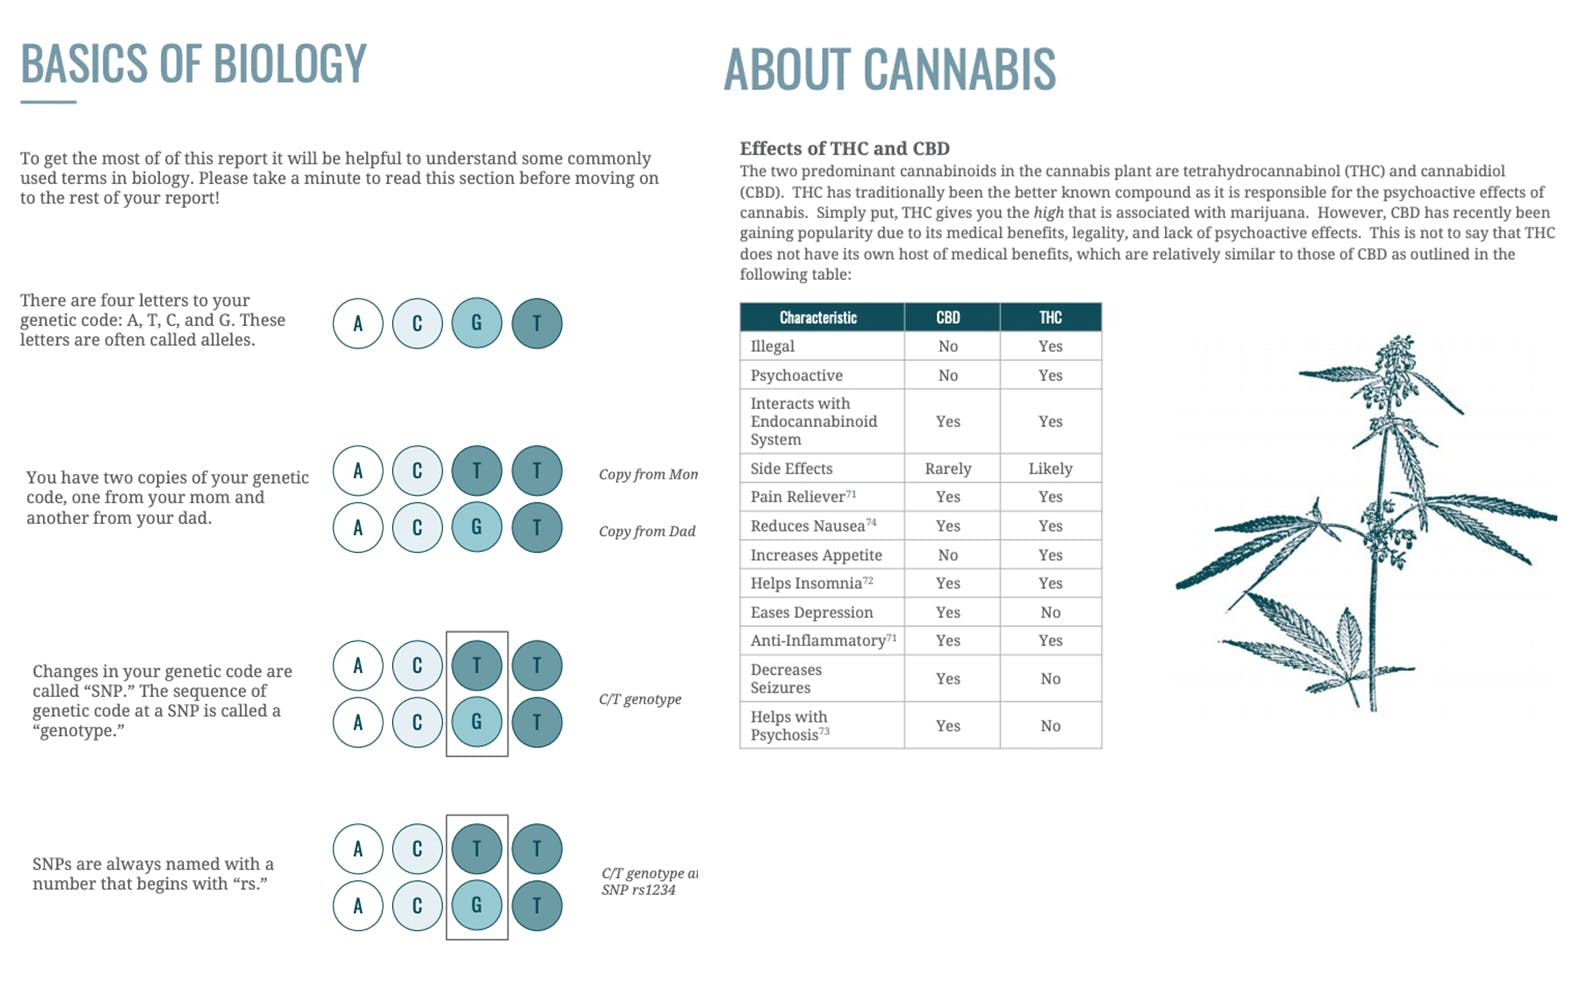 Dynamic DNA Laboratories' explanation of using and understanding pharmacogenetics as it relates to cannabis products.